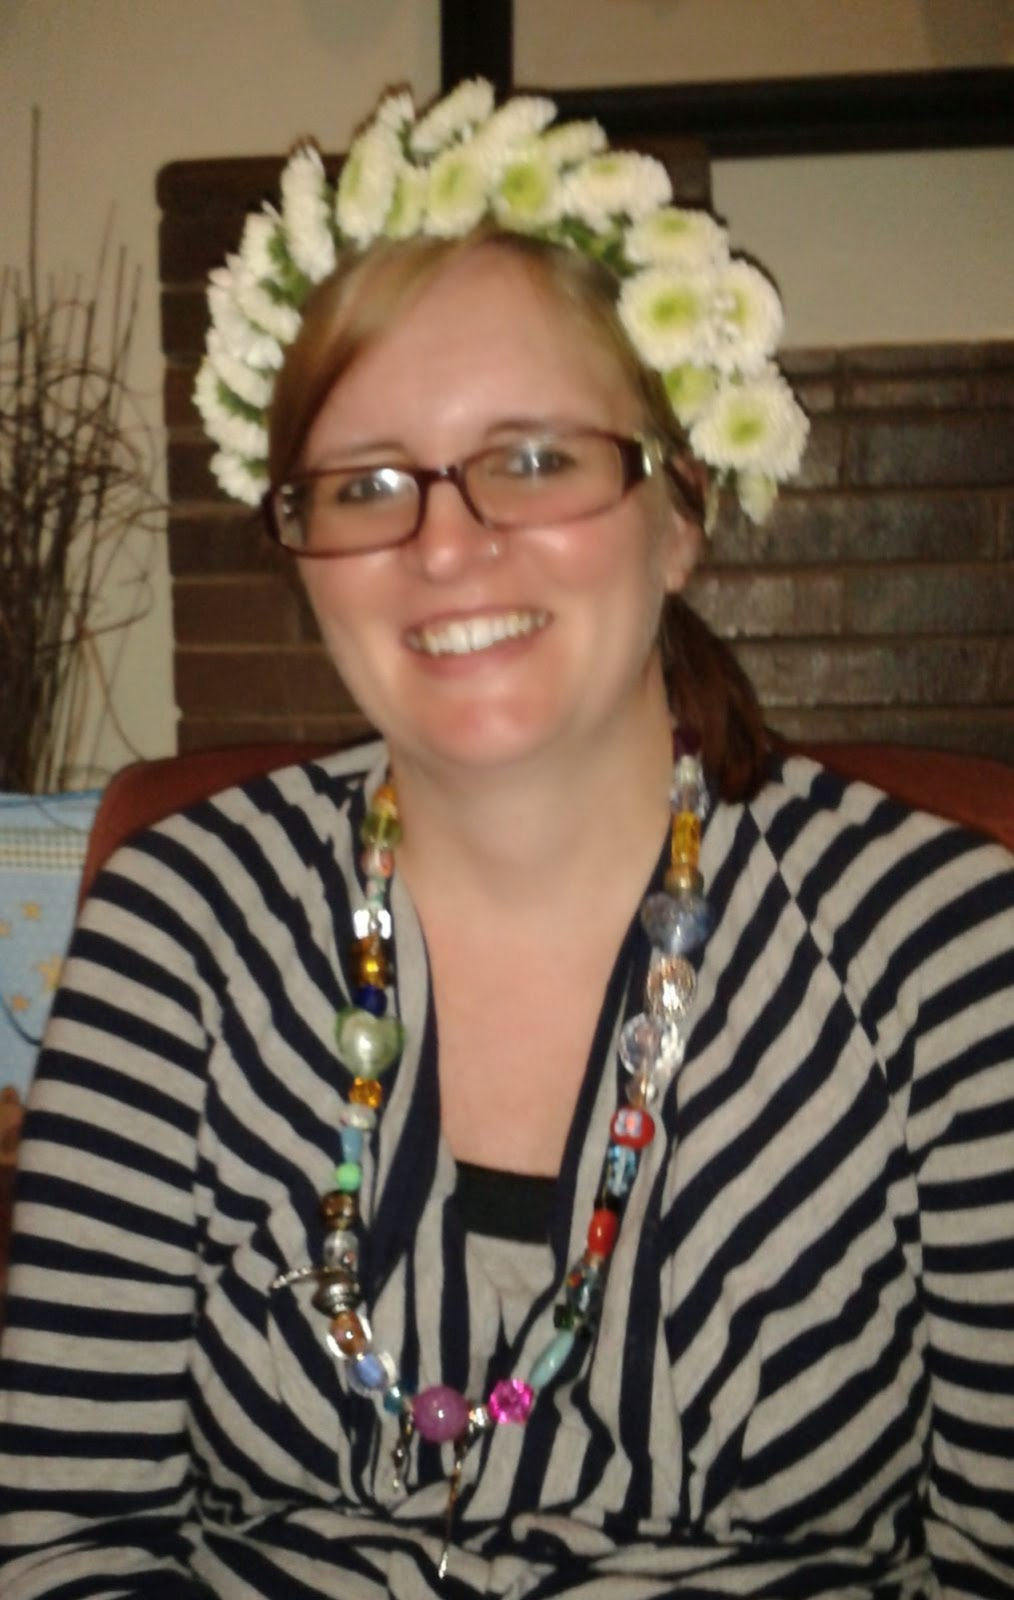 Tara's Flower Crown and Bead Necklace